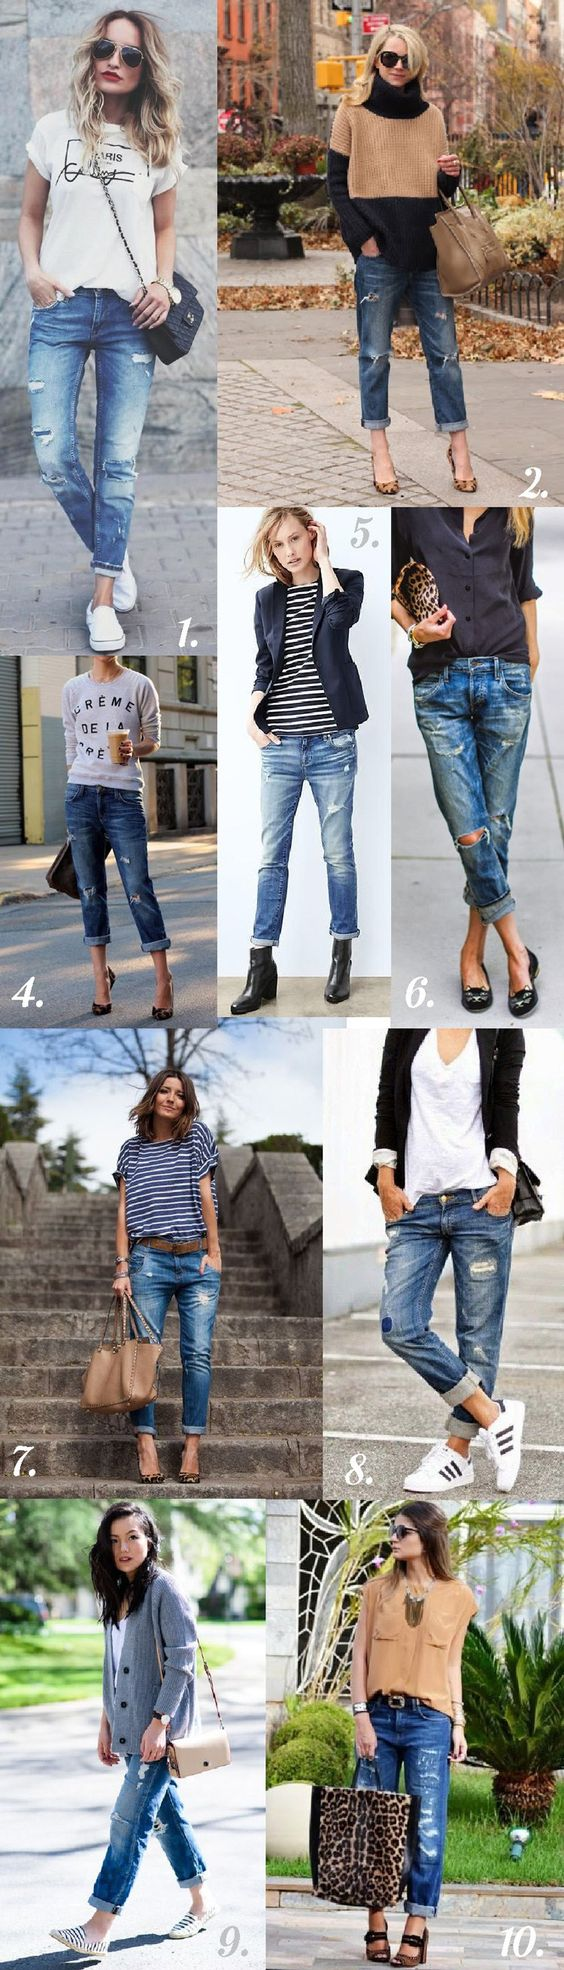 MORGAN BOYFRIEND JEANS // STLYING & INSPIRATION